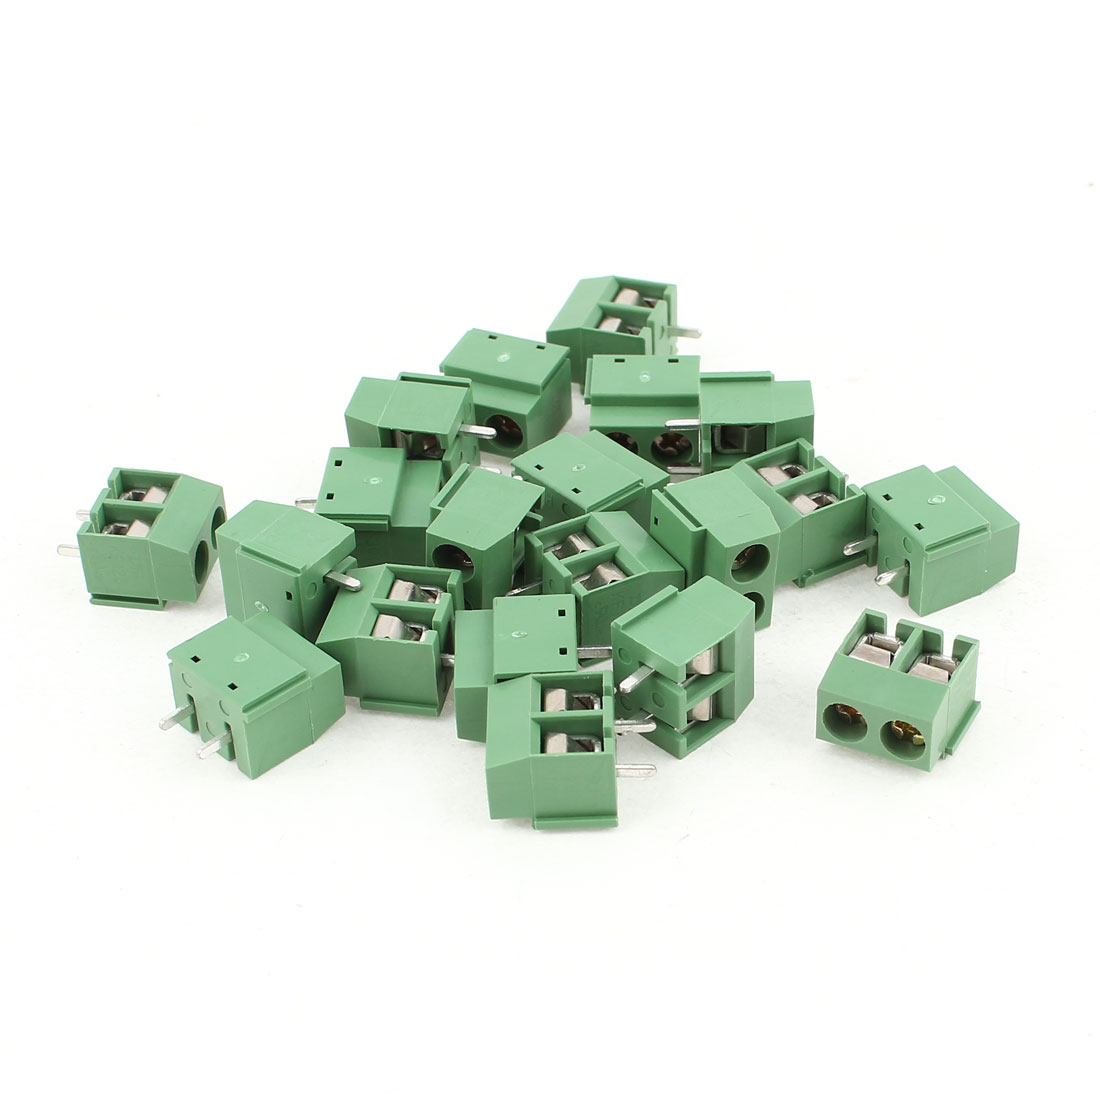 20 Pcs 5.08mm Pitch 2Pin 2 Way Pluggable Type PCB Mounting Green Detachable Screw Terminal Block Connector